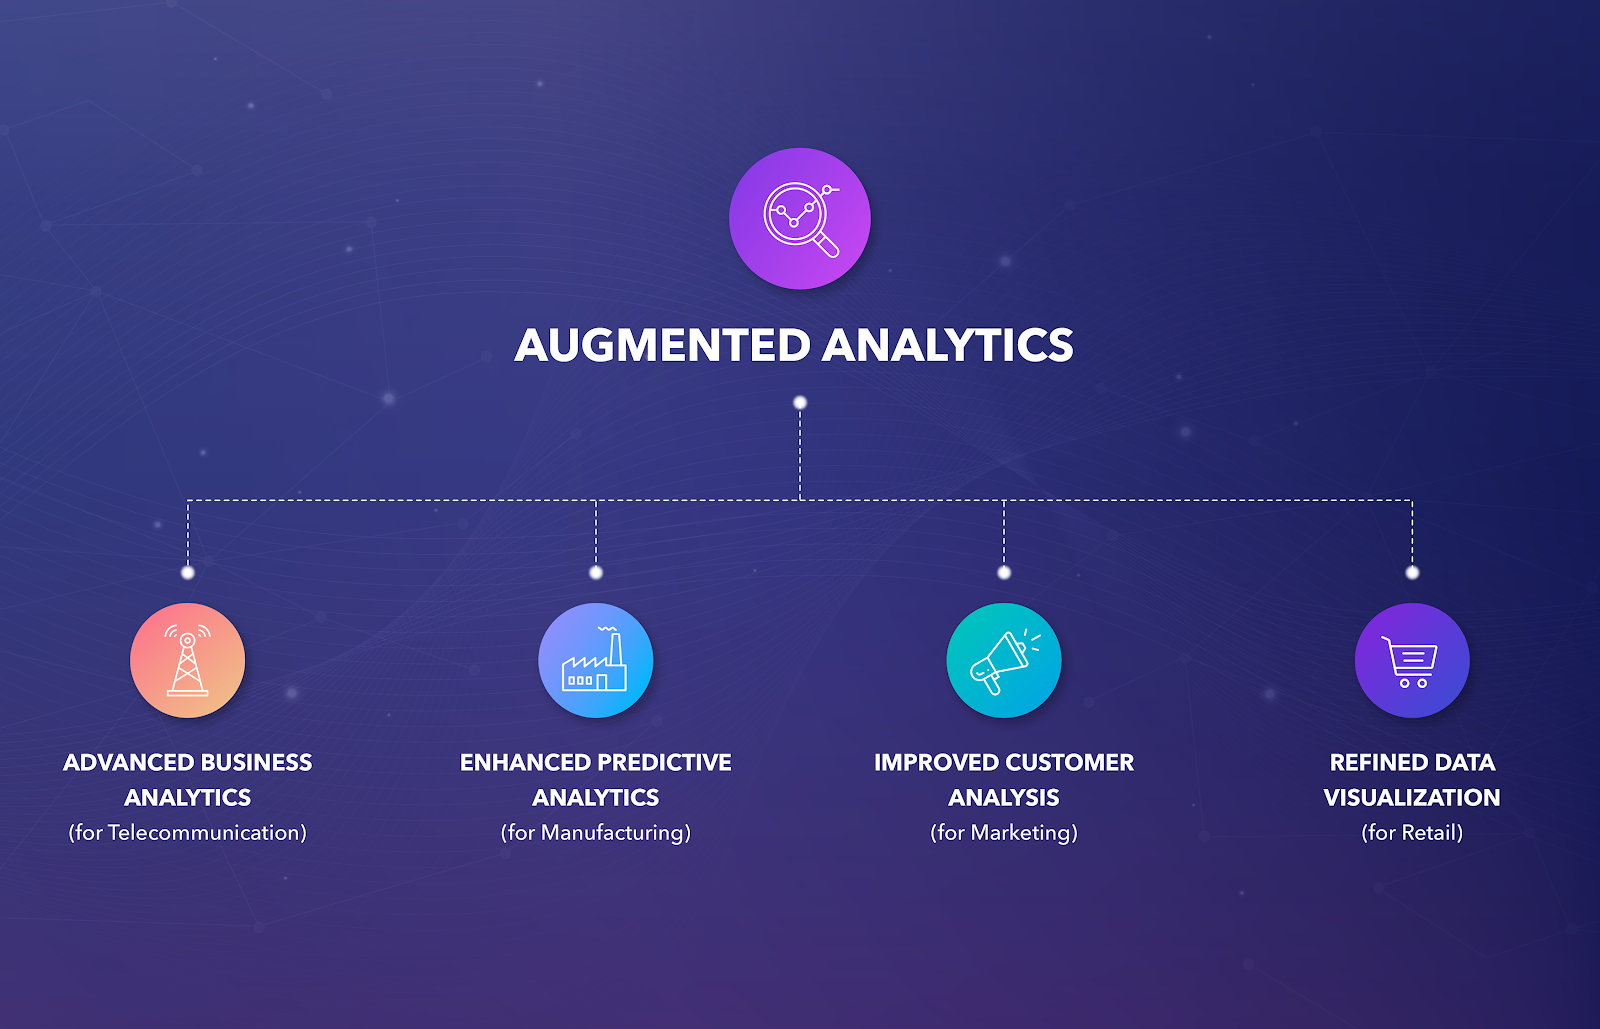 Using Augmented Analytics in Industries